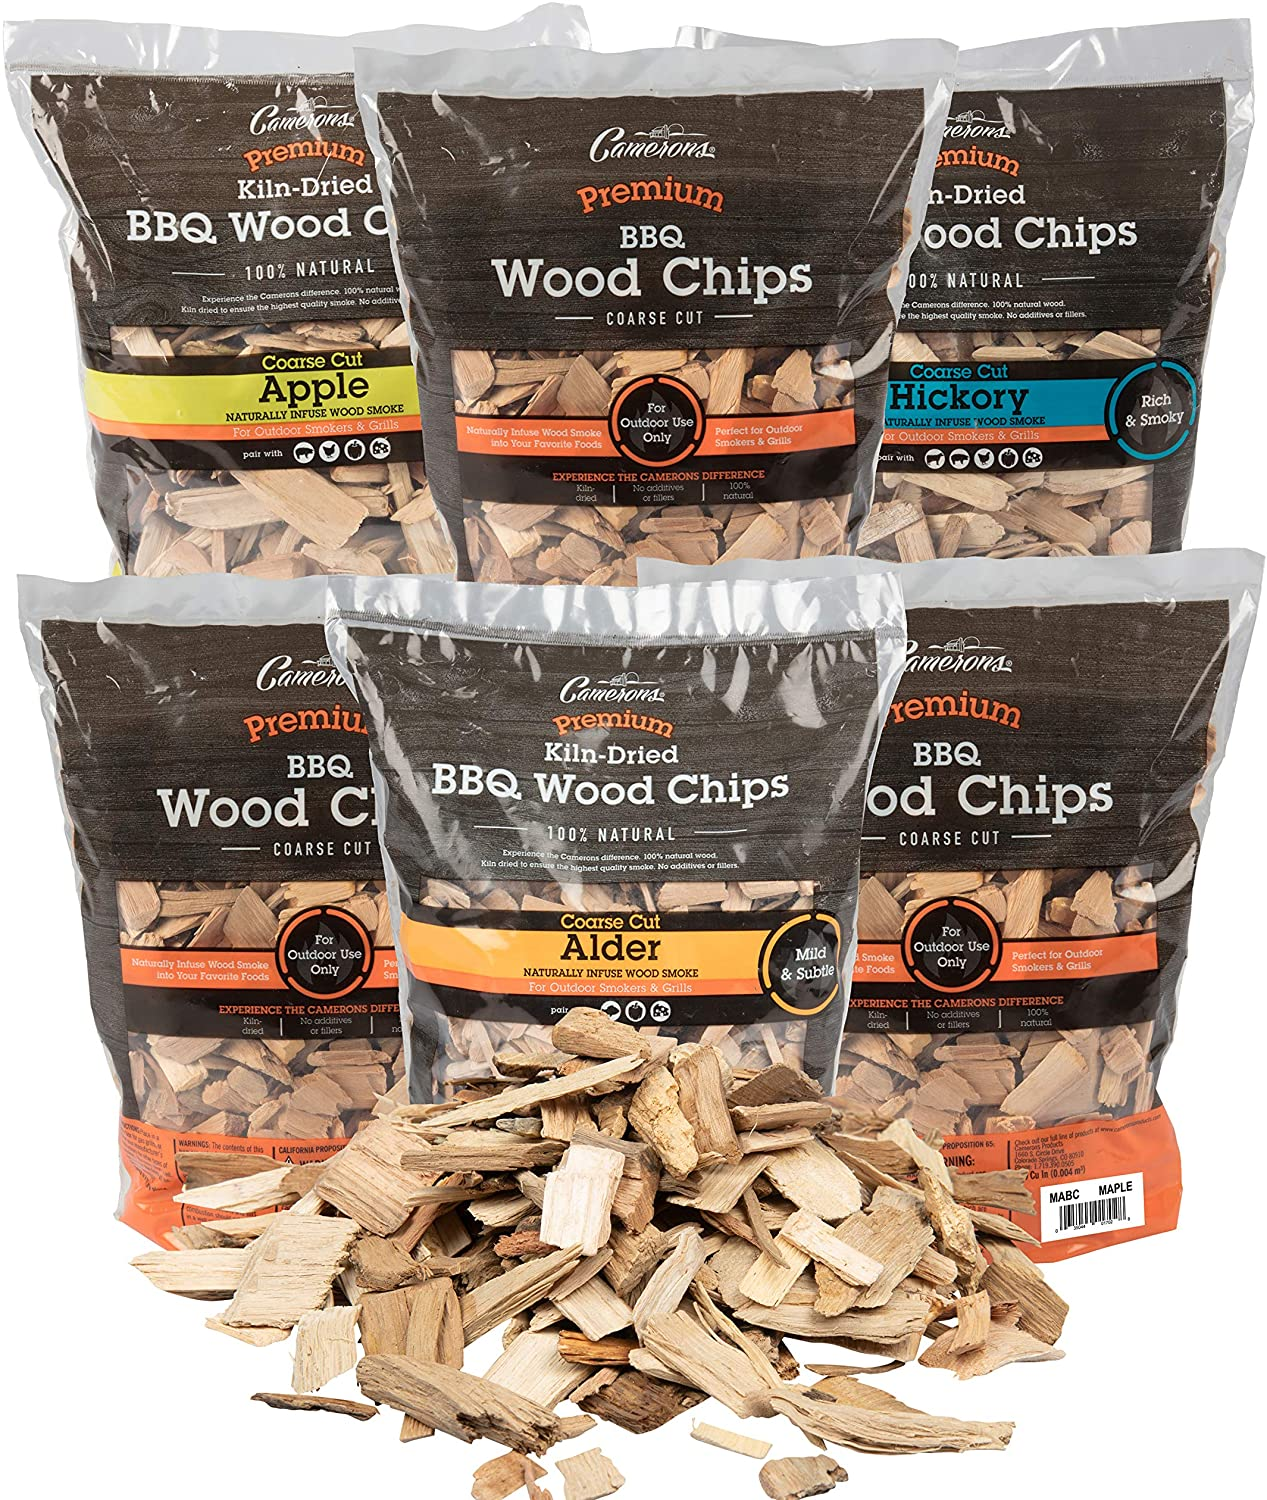 Camerons Products Wood Smoker Chips, 6 Pack ~ 2 lb. Bag, 260 cu. in. - Apple, Alder, Hickory, Cherry, Bourbon Soaked Oak, Pecan - 100% Natural, Fine Wood Smoking and Barbecue Chips